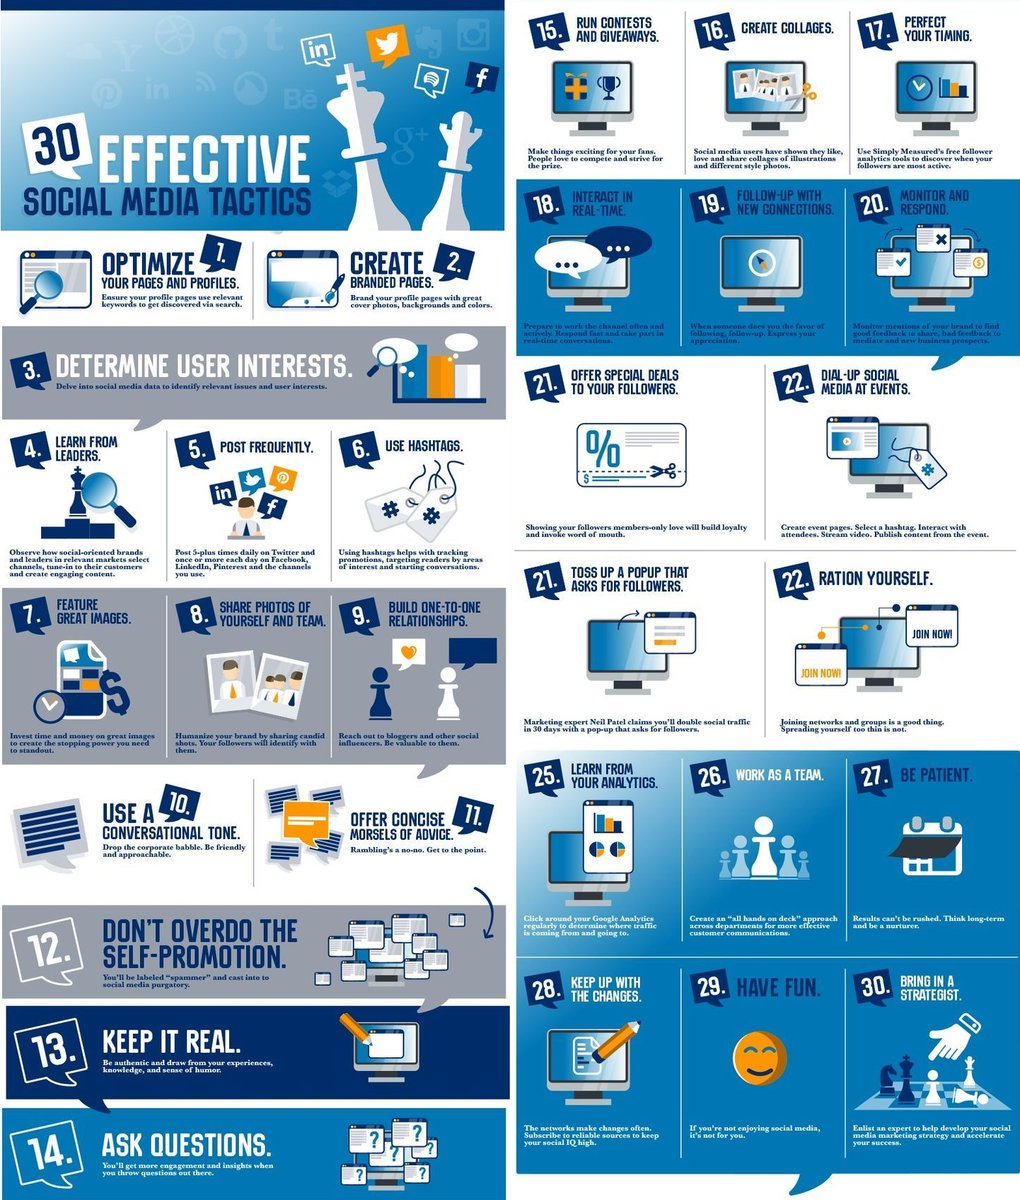 30 Effective Social media Tactics #digitalmarketing #contentmarketing #makeyourownlane #Defstar5 #Mpgvip #Internet #yemirise #internetmarketing #SEO #smm #seotips #growthhacking #Marketing #SocialMedia  #onlinemarketing #emailmarketing  #startup  #SEO #SMM